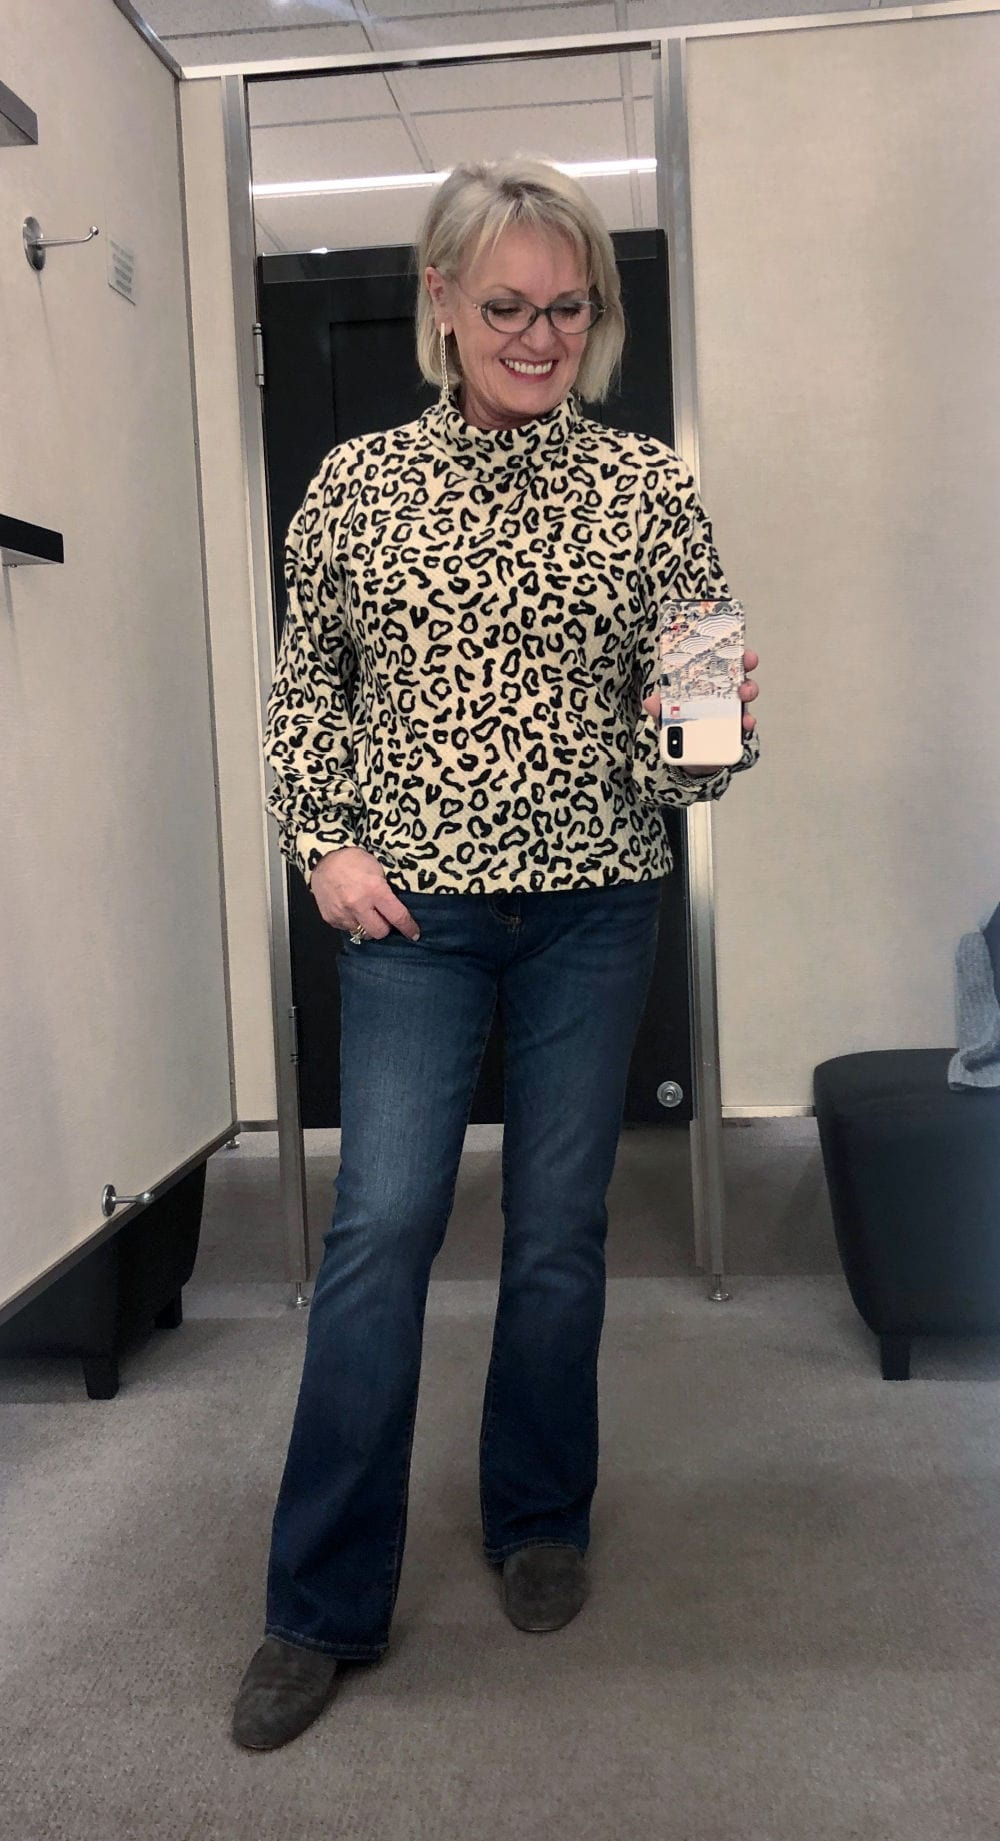 DRESSING ROOM PHOTO OF JENNIFER CONOLLY WEARING LEOPARD TOP